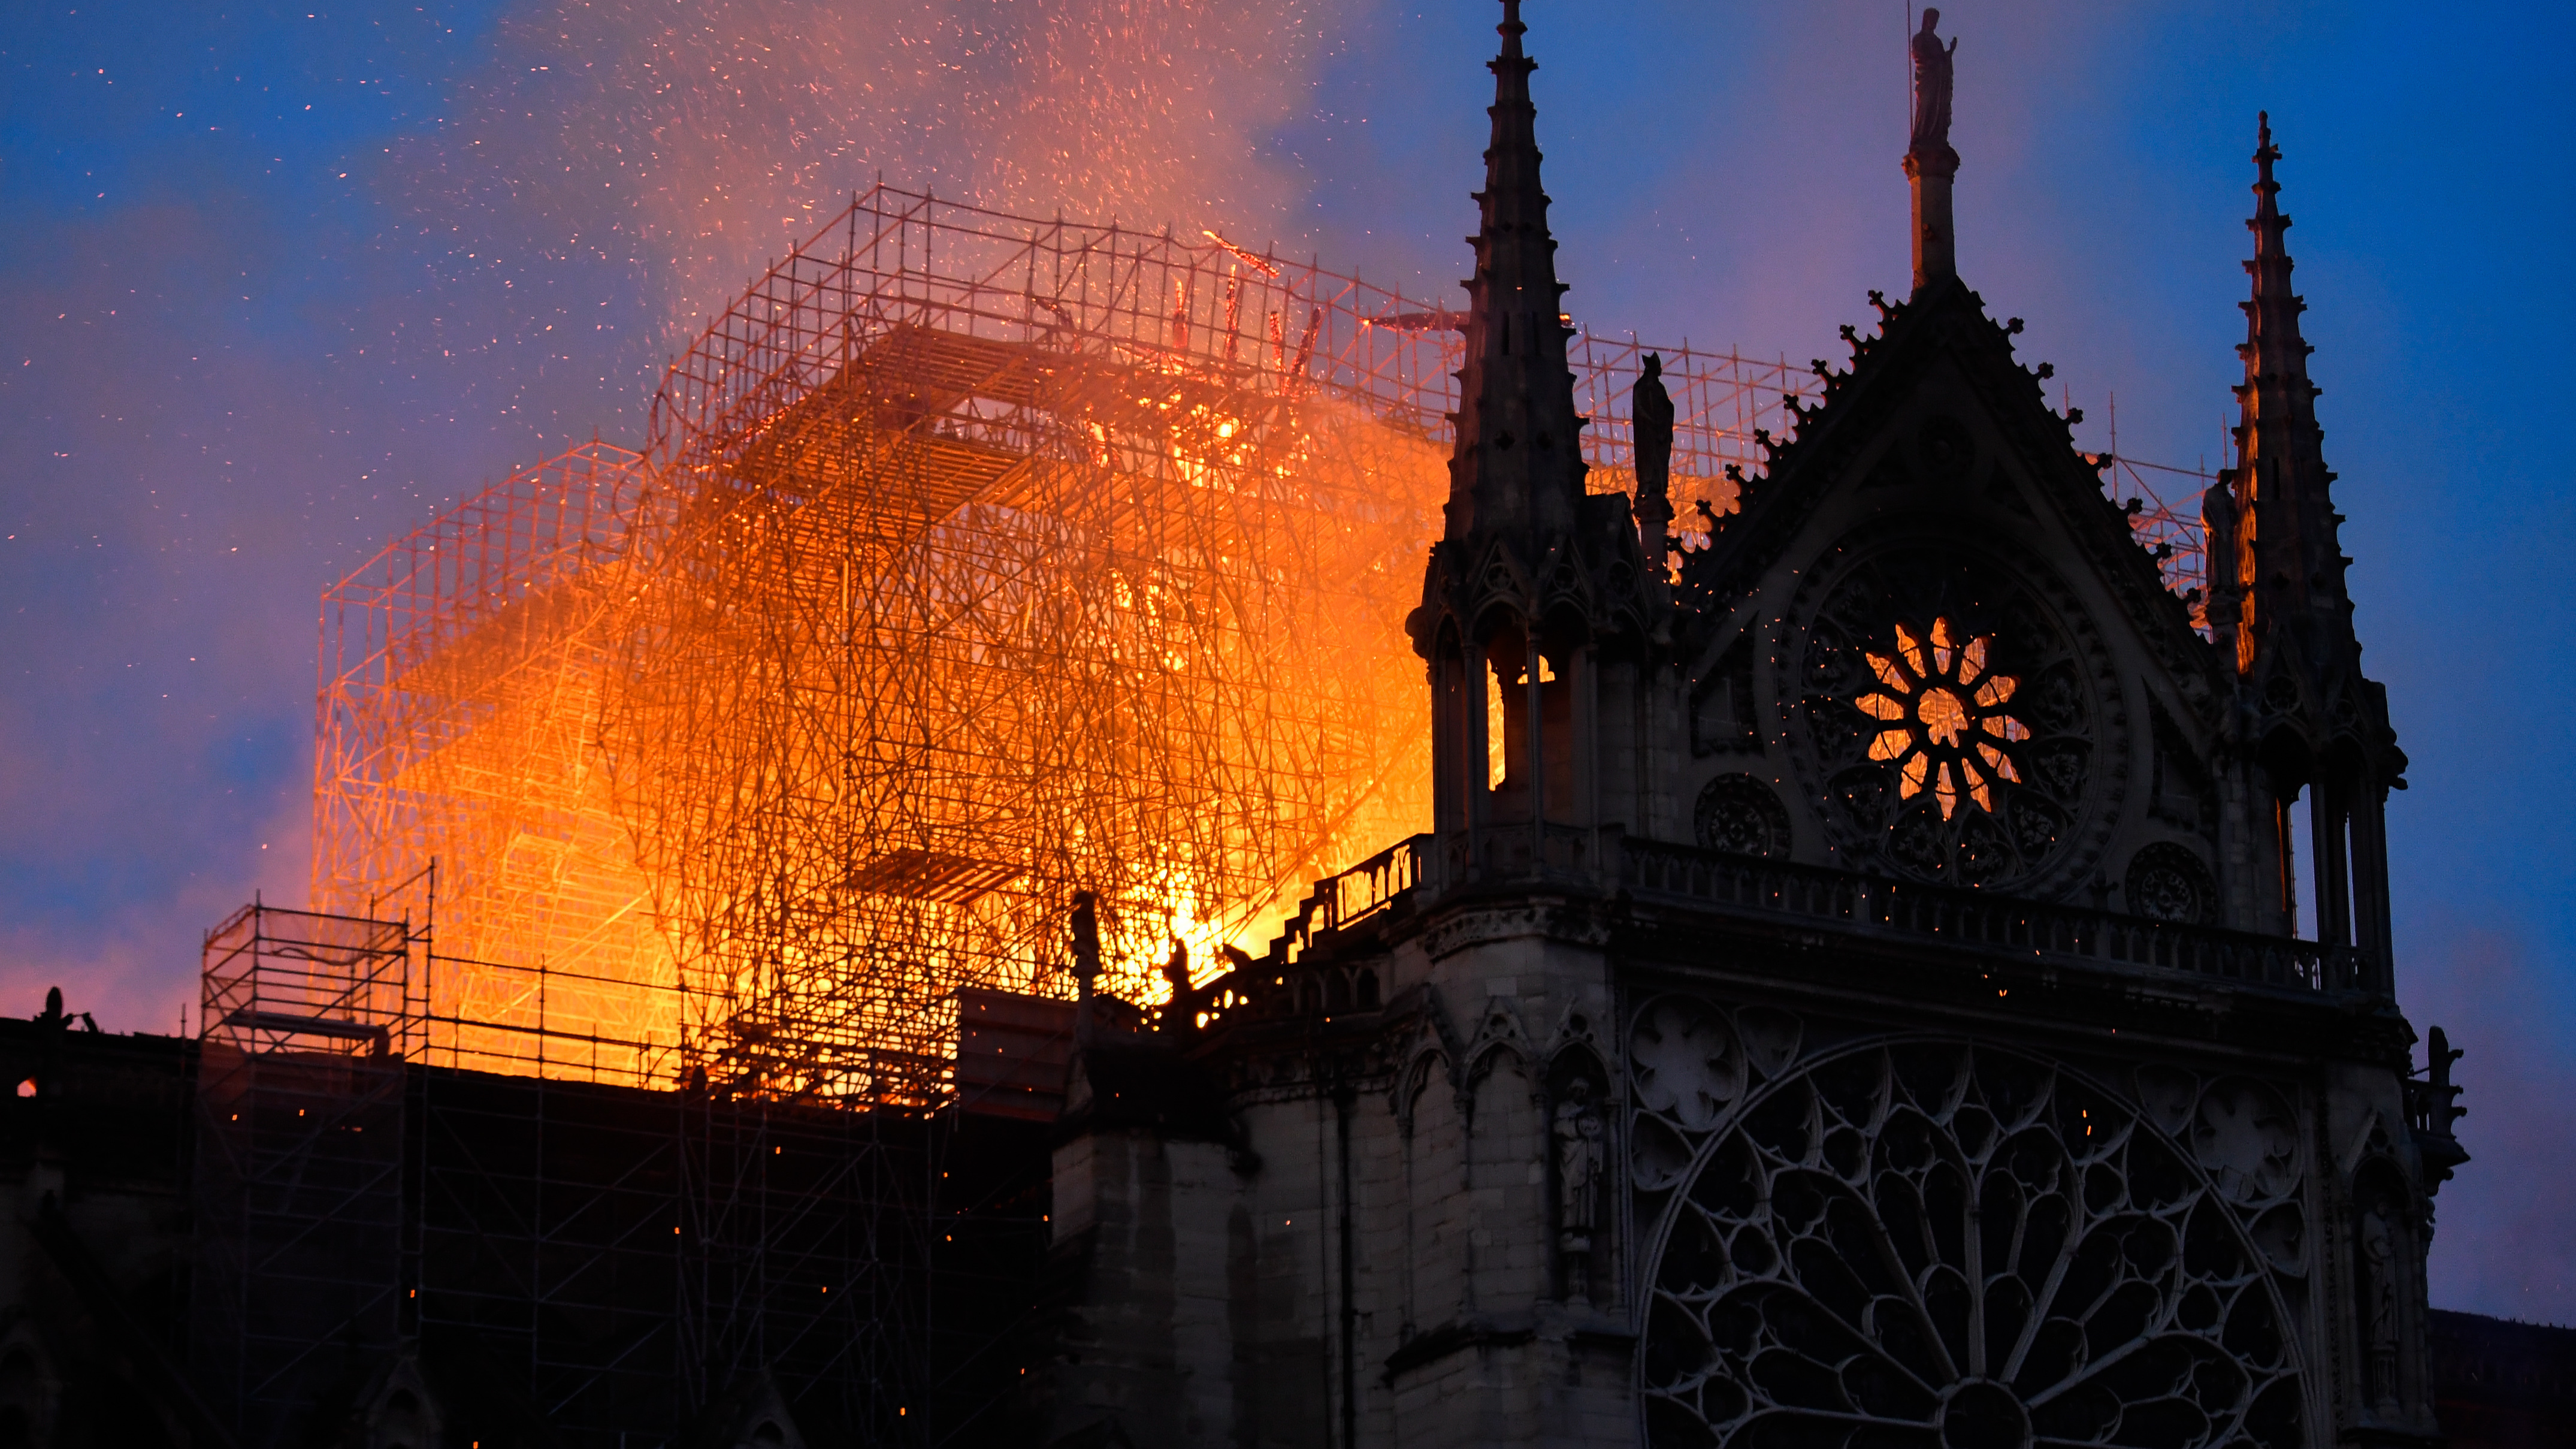 The fire took place on 15 April. Credit: PA